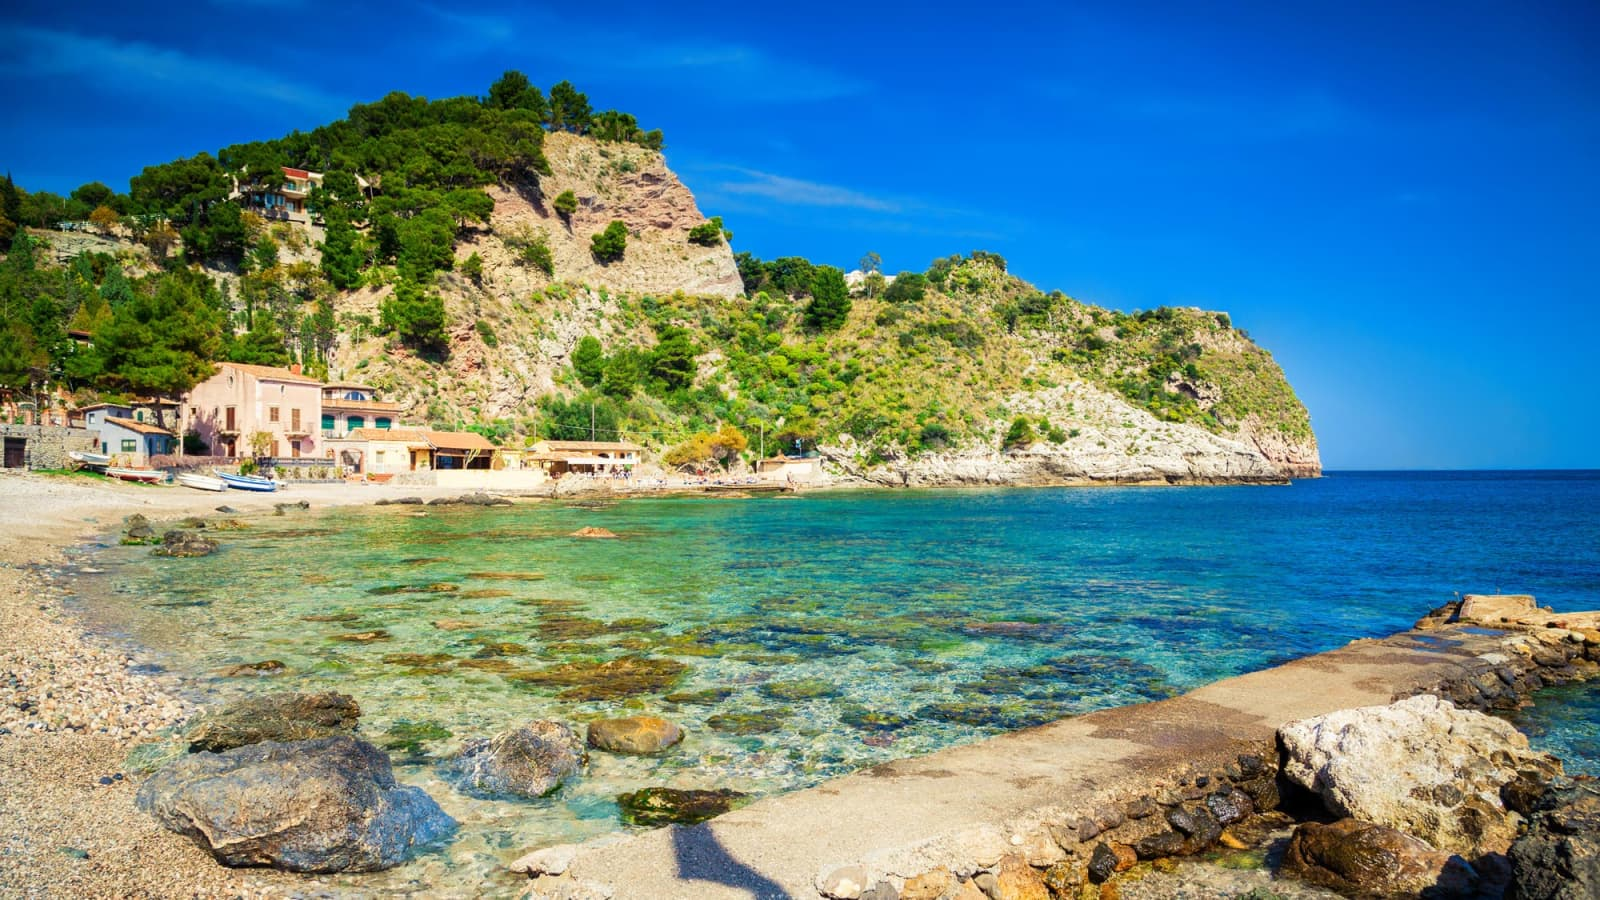 Holidays to taormina sicily topflight ireland 39 s for Taormina sicilia